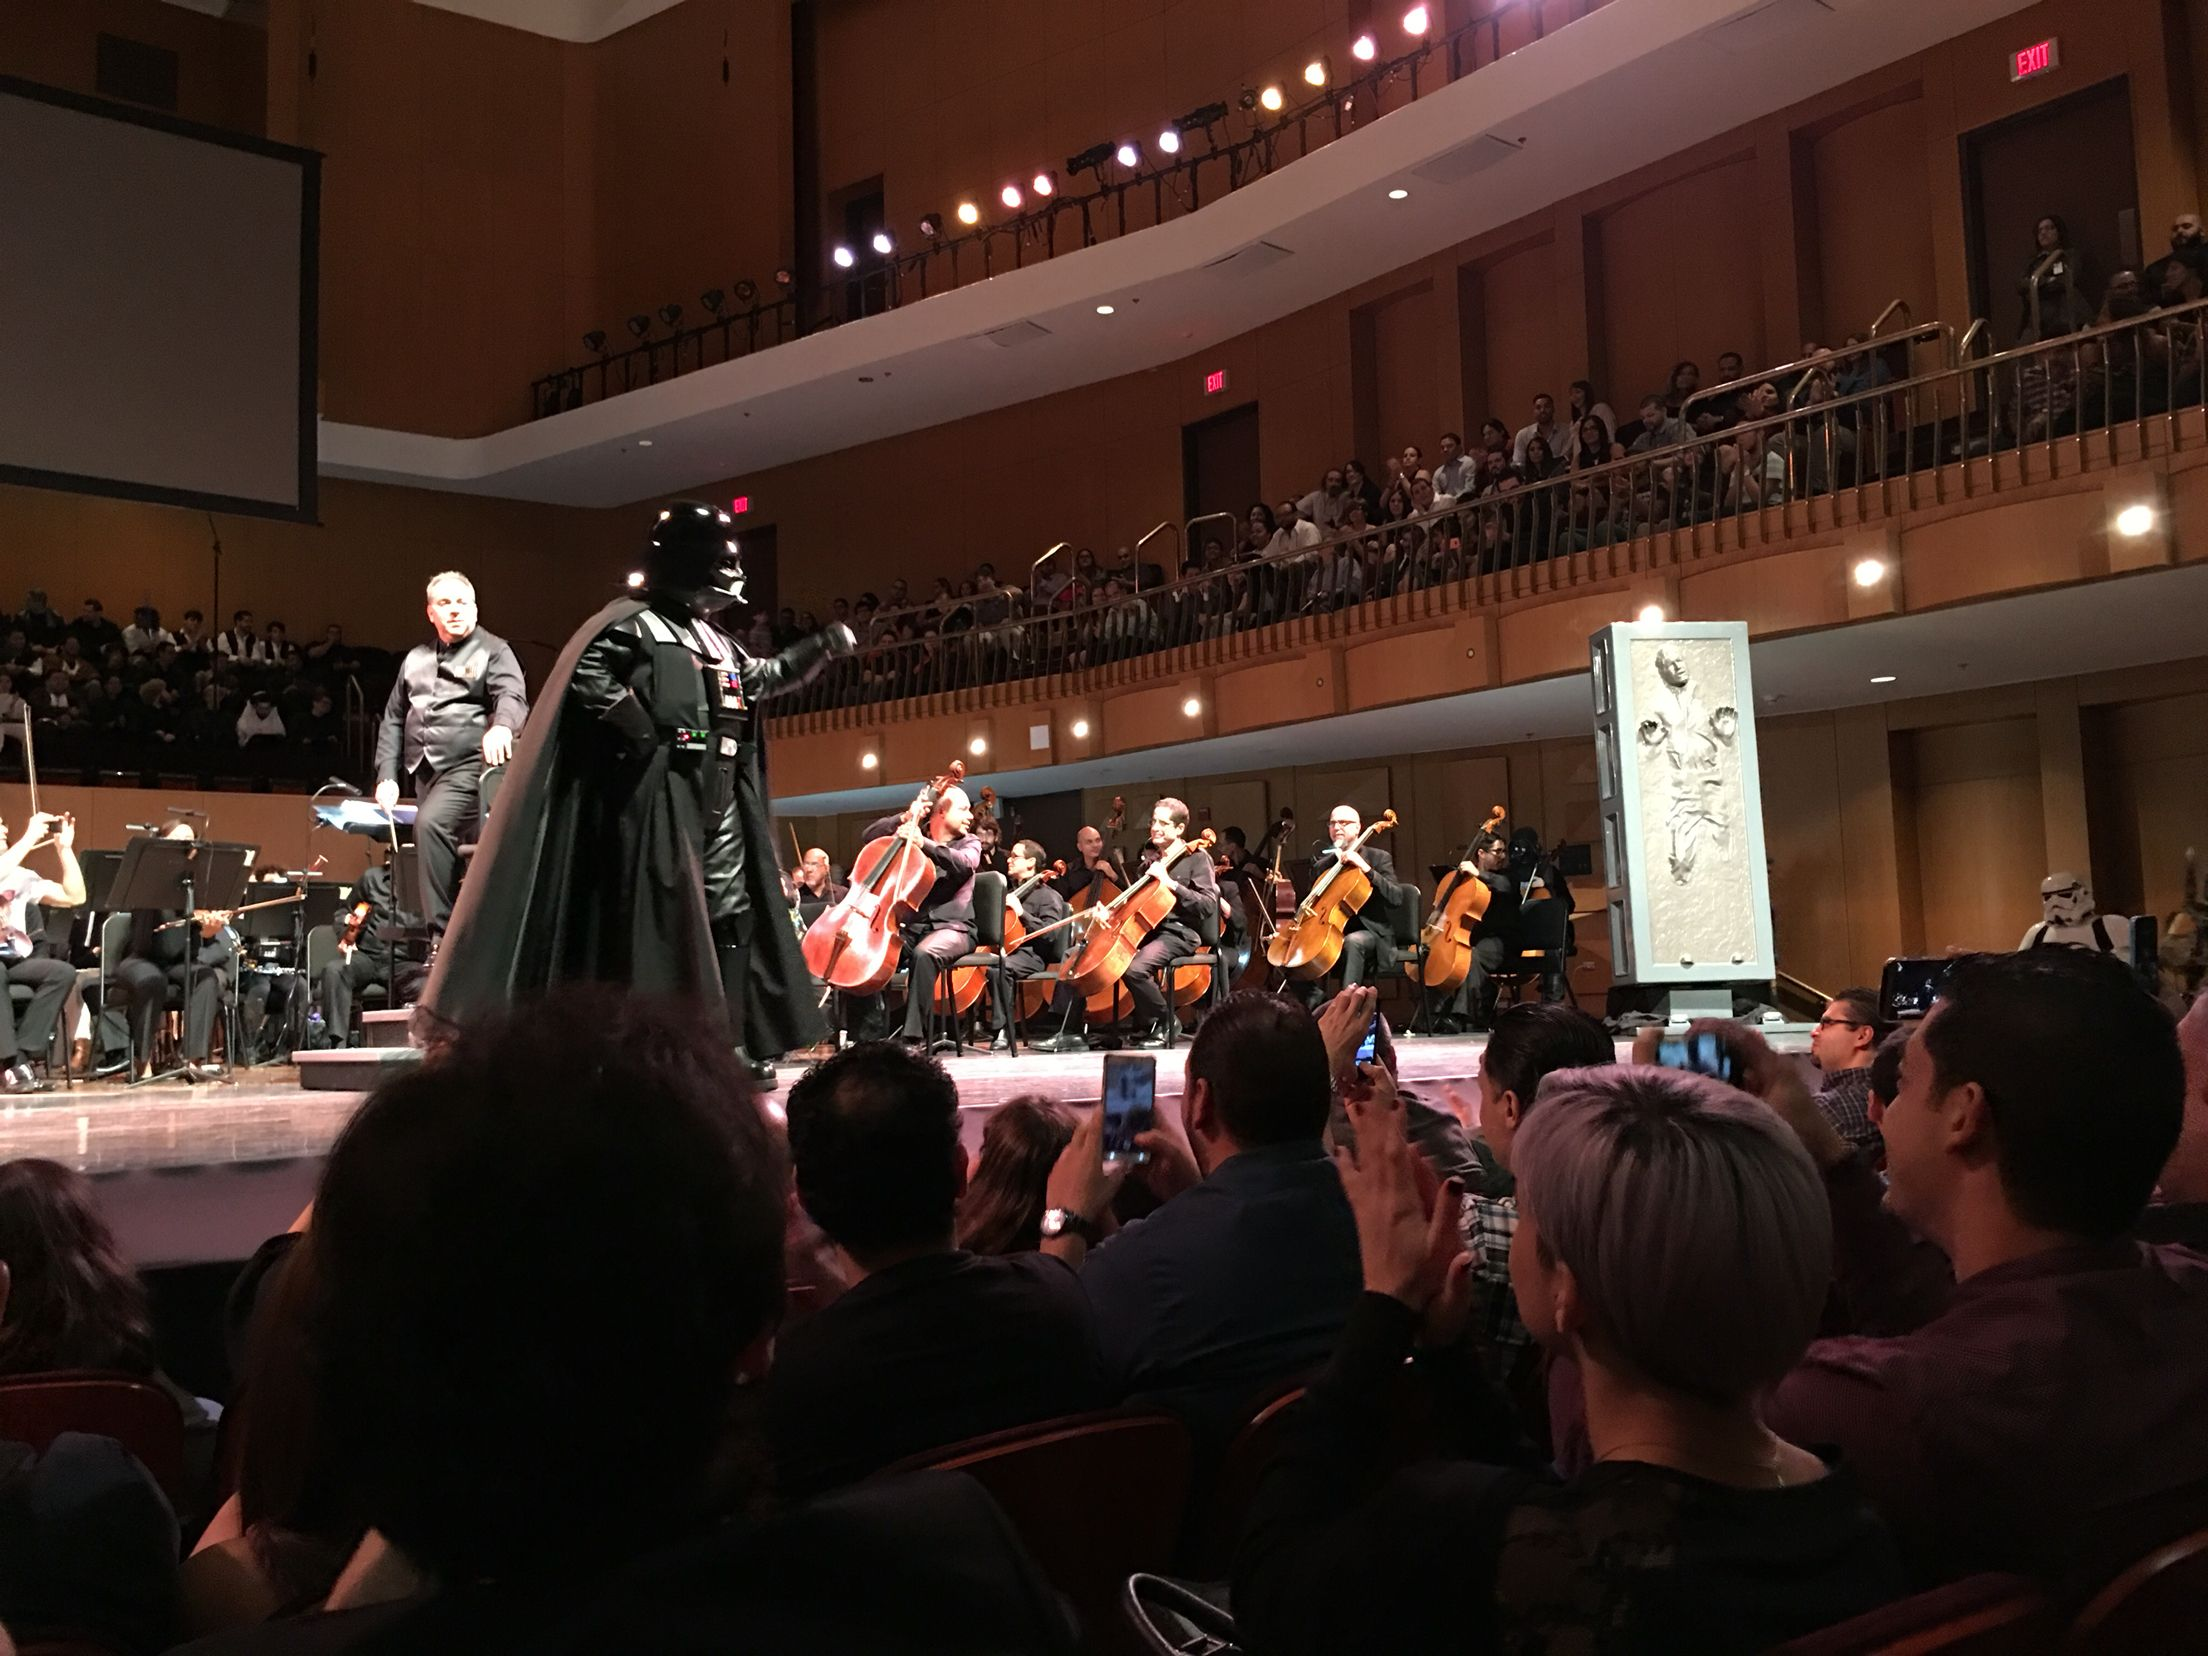 Concierto de #StarWars el 20 de noviembre de 2015 de La Orquesta Sinfónica de Puerto Rico Centro de Bellas Artes Santurce, The Imperial March Suite. #DarthVader